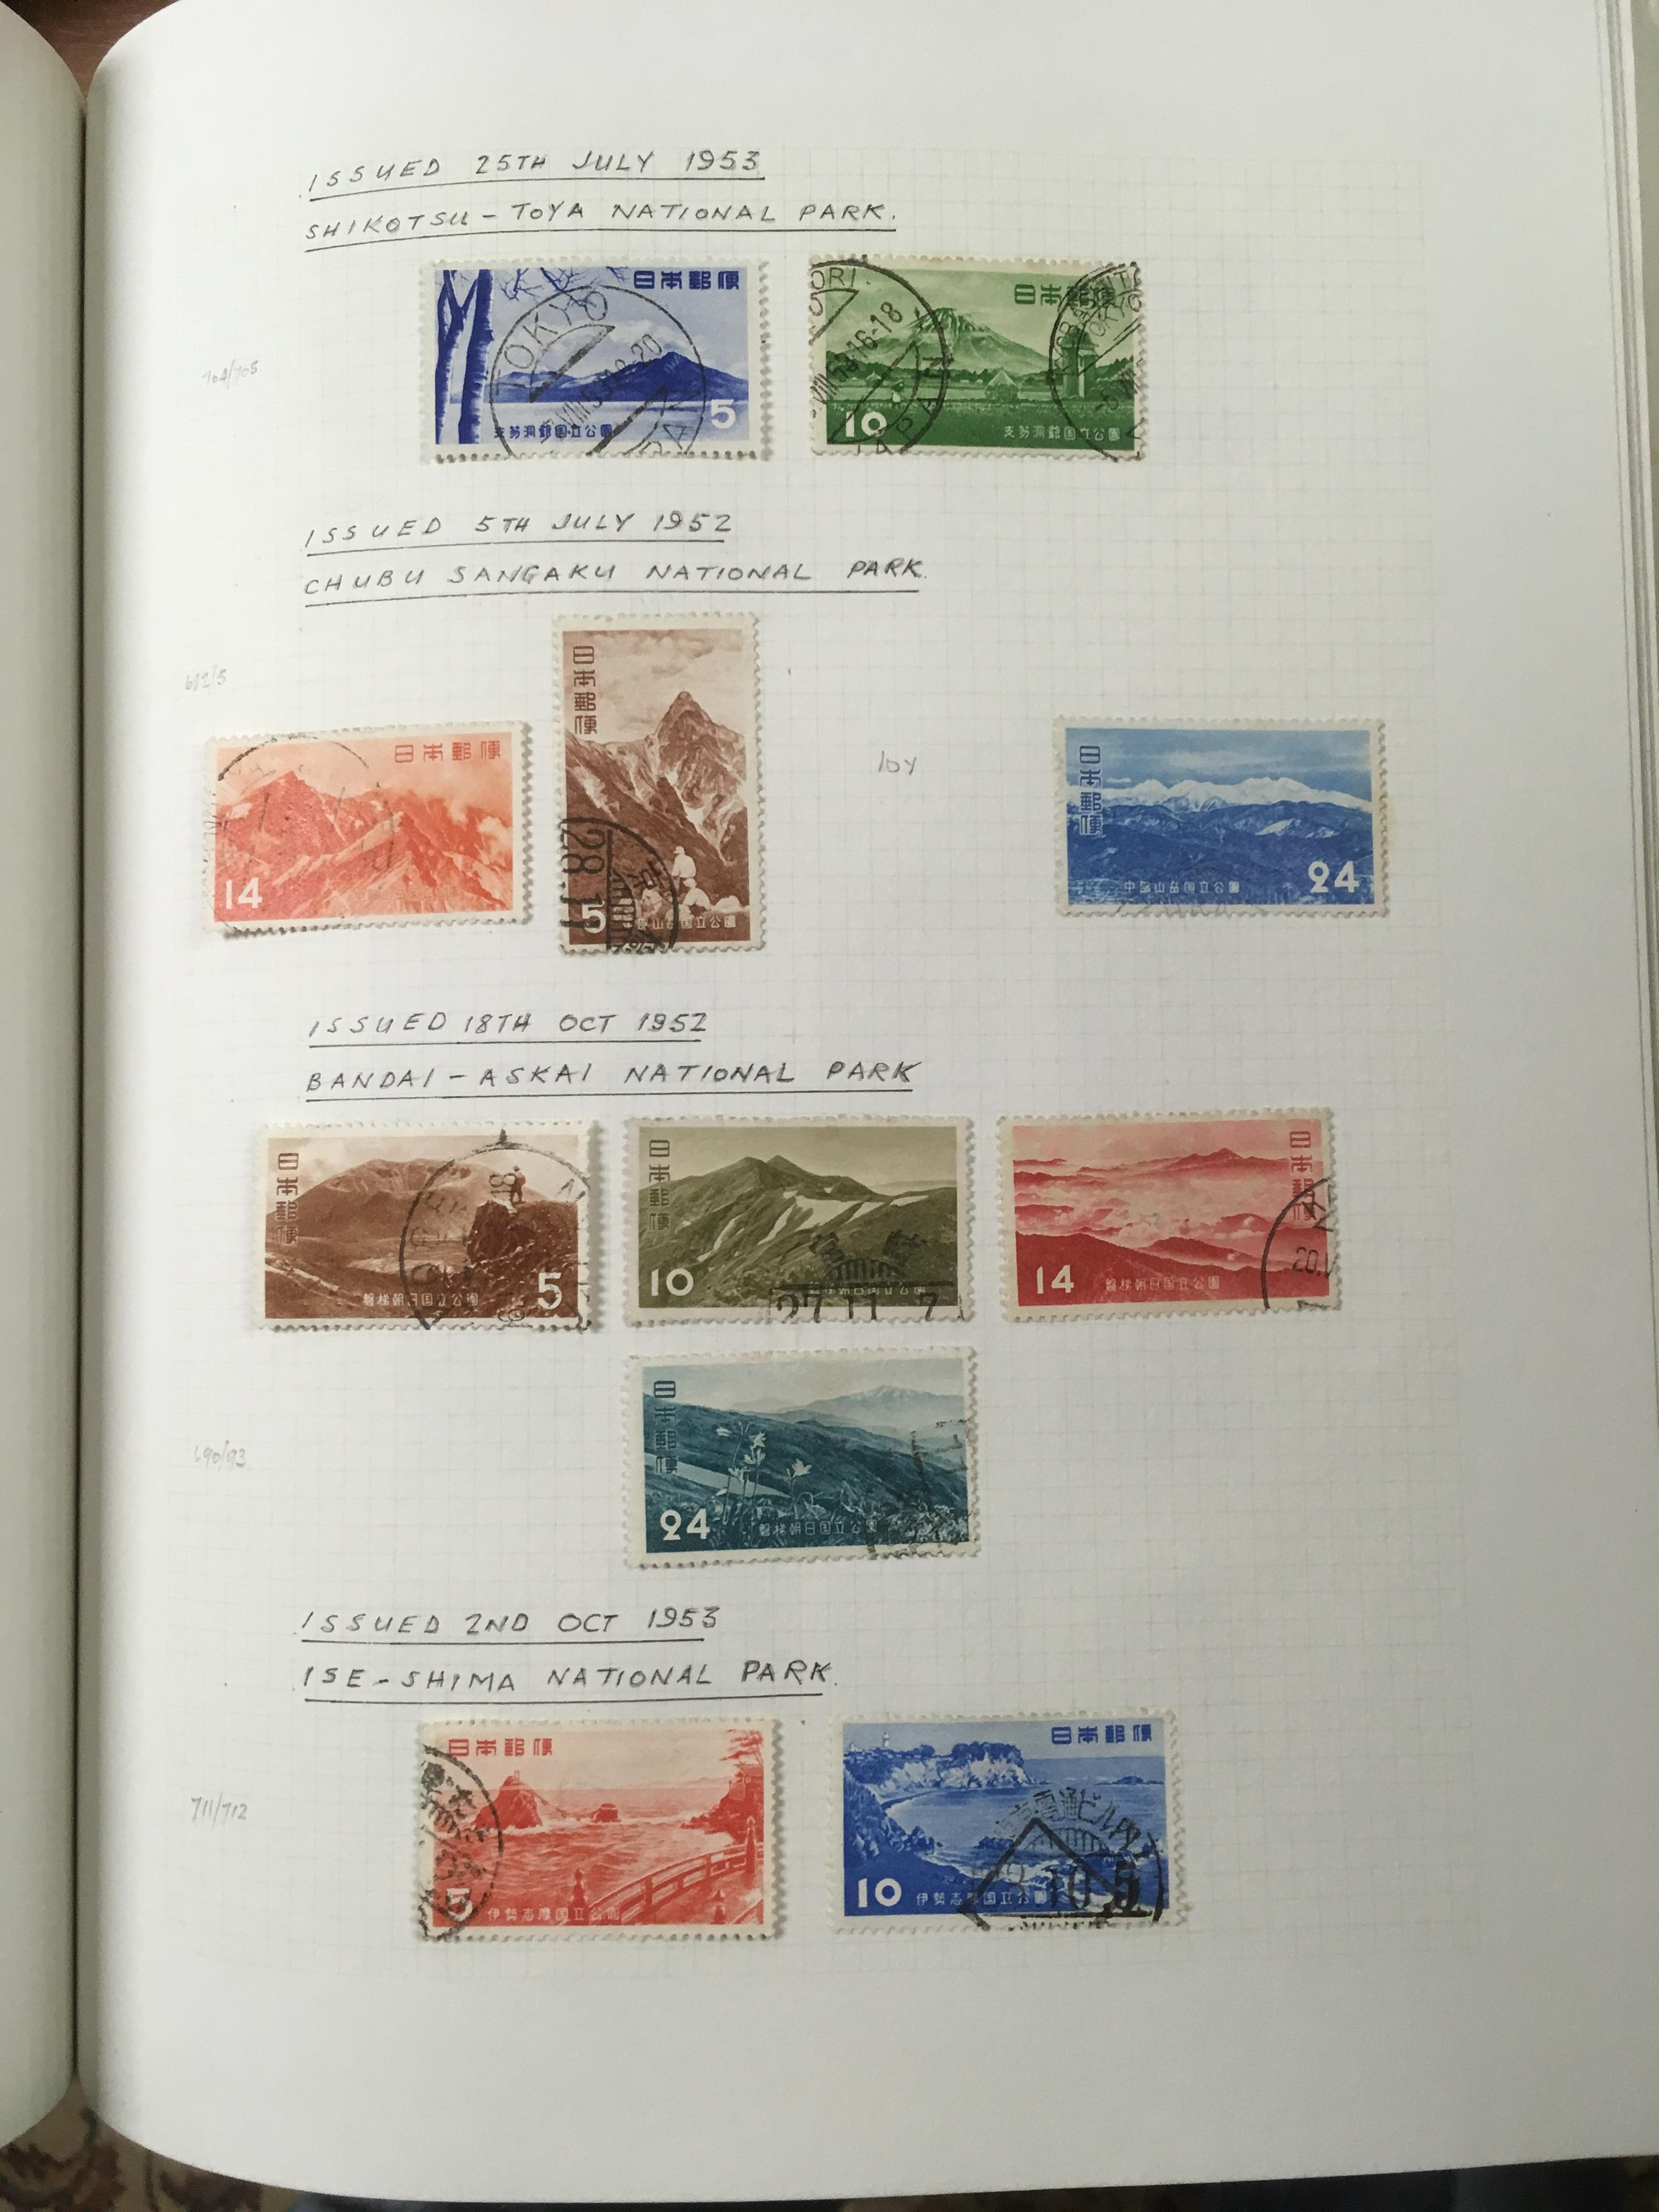 JAPAN: EXTENSIVE USED COLLECTION TO ABOU - Image 4 of 4